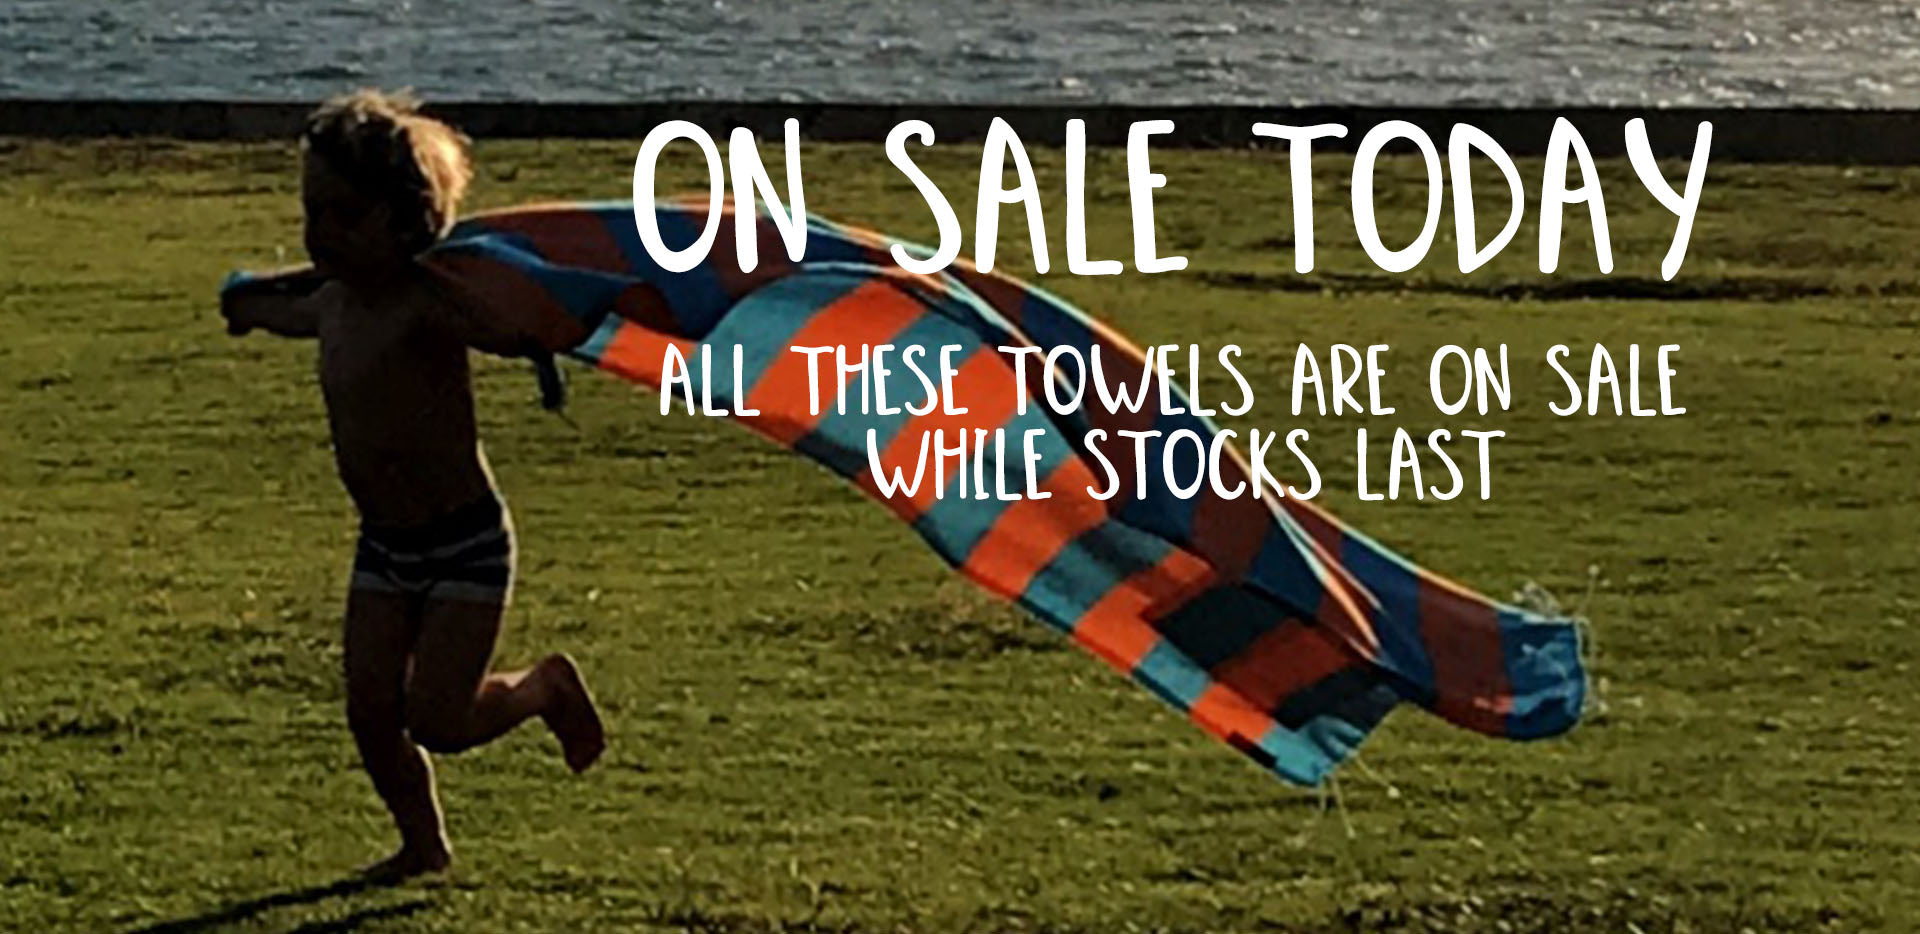 Freostyle Turkish Towels on SALE TODAY